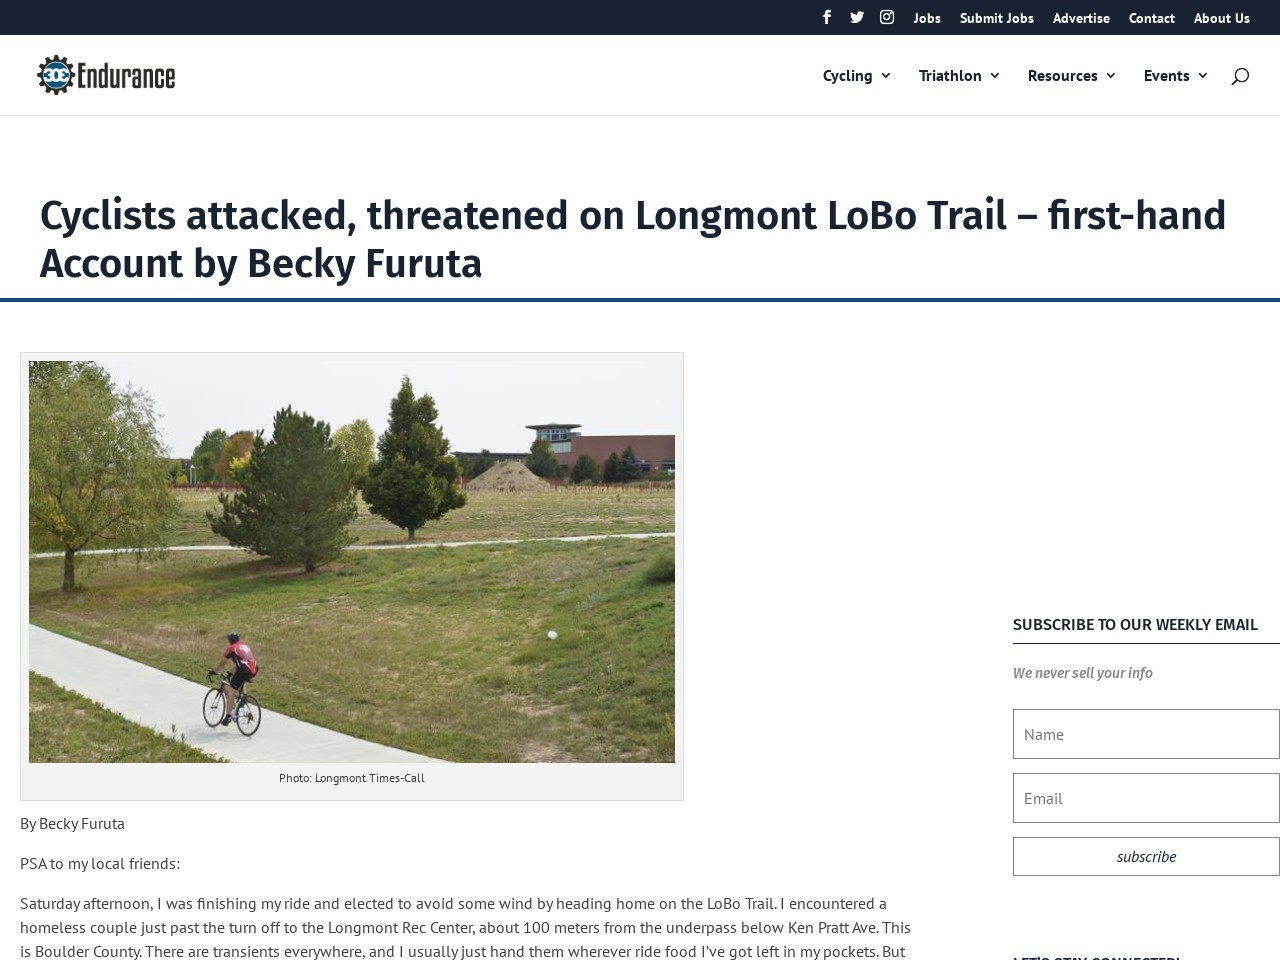 Cyclists attacked, threatened on Longmont LoBo Trail – first-hand Account by Becky Furuta